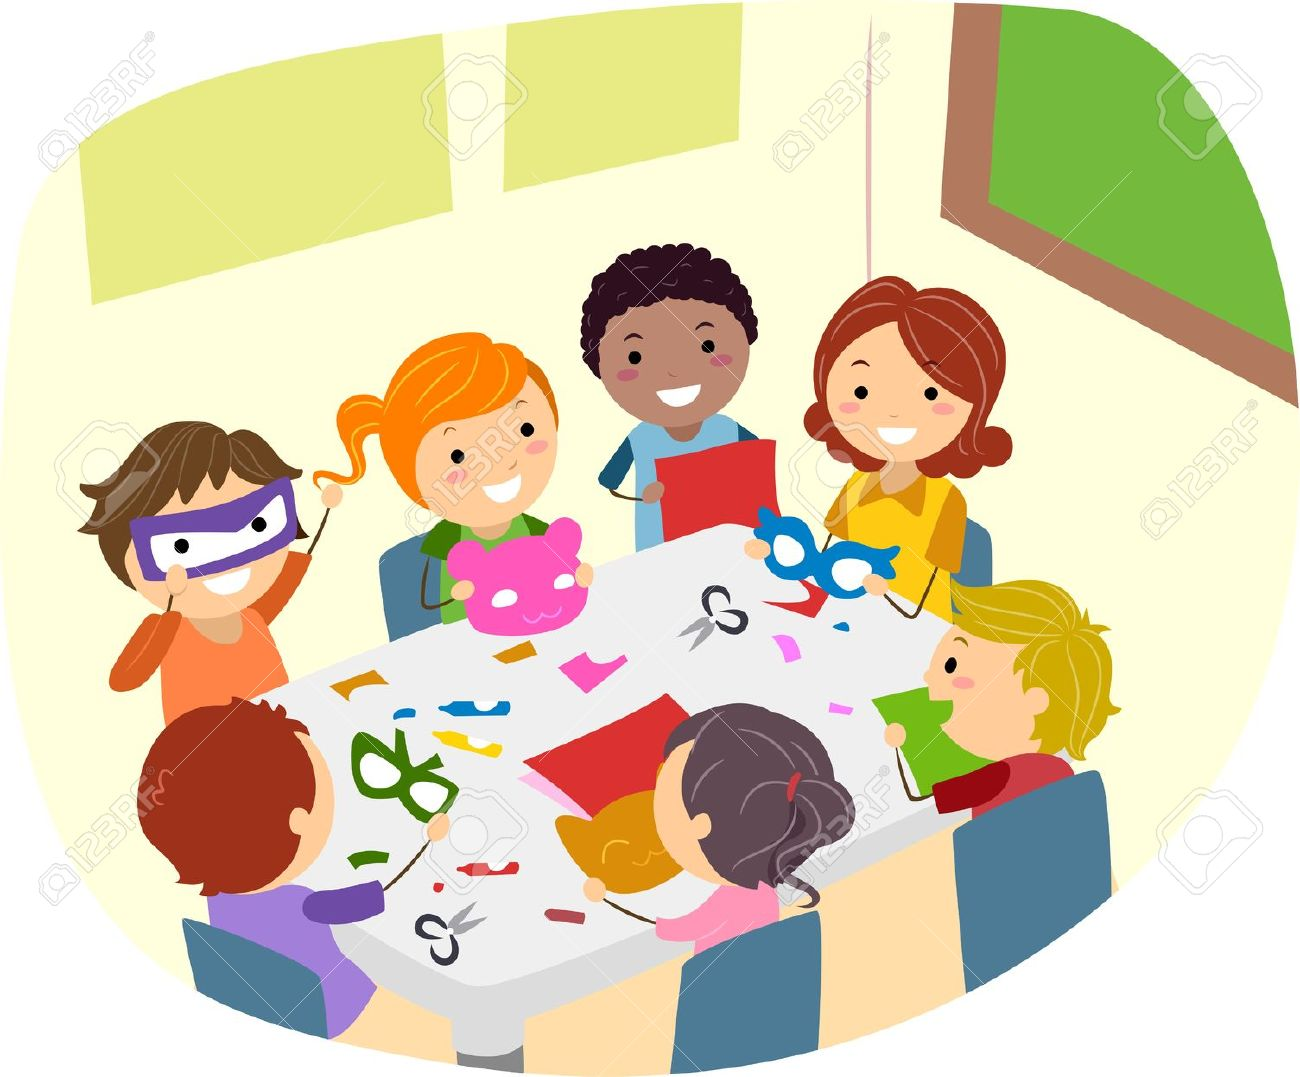 Illustration Of Kids Making Paper Crafts Stock Photo, Picture And.